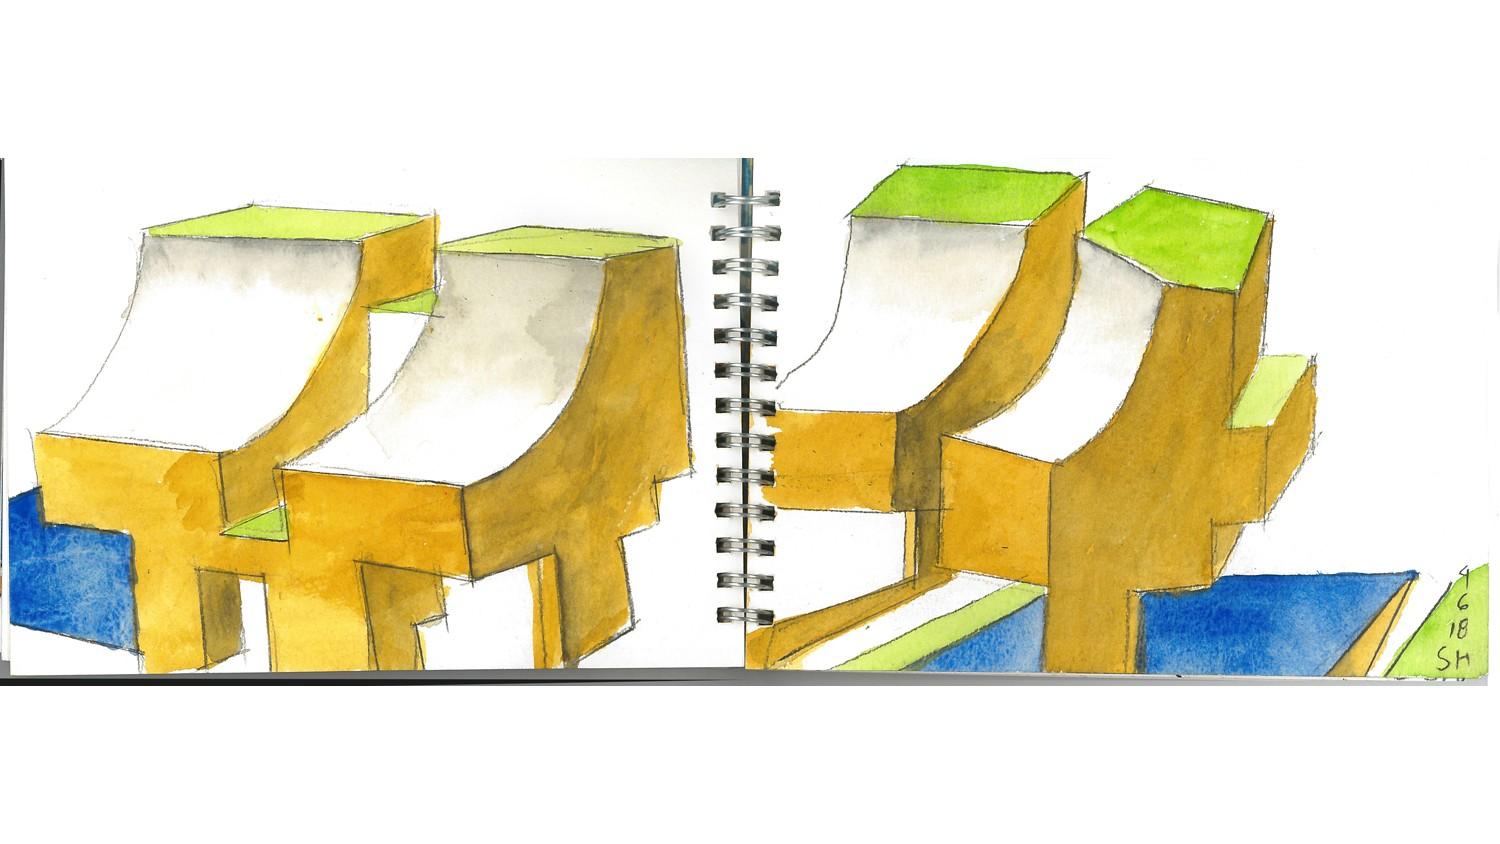 https://stevenholl.sfo2.digitaloceanspaces.com/uploads/projects/project-images/cifi-watercolor.jpg